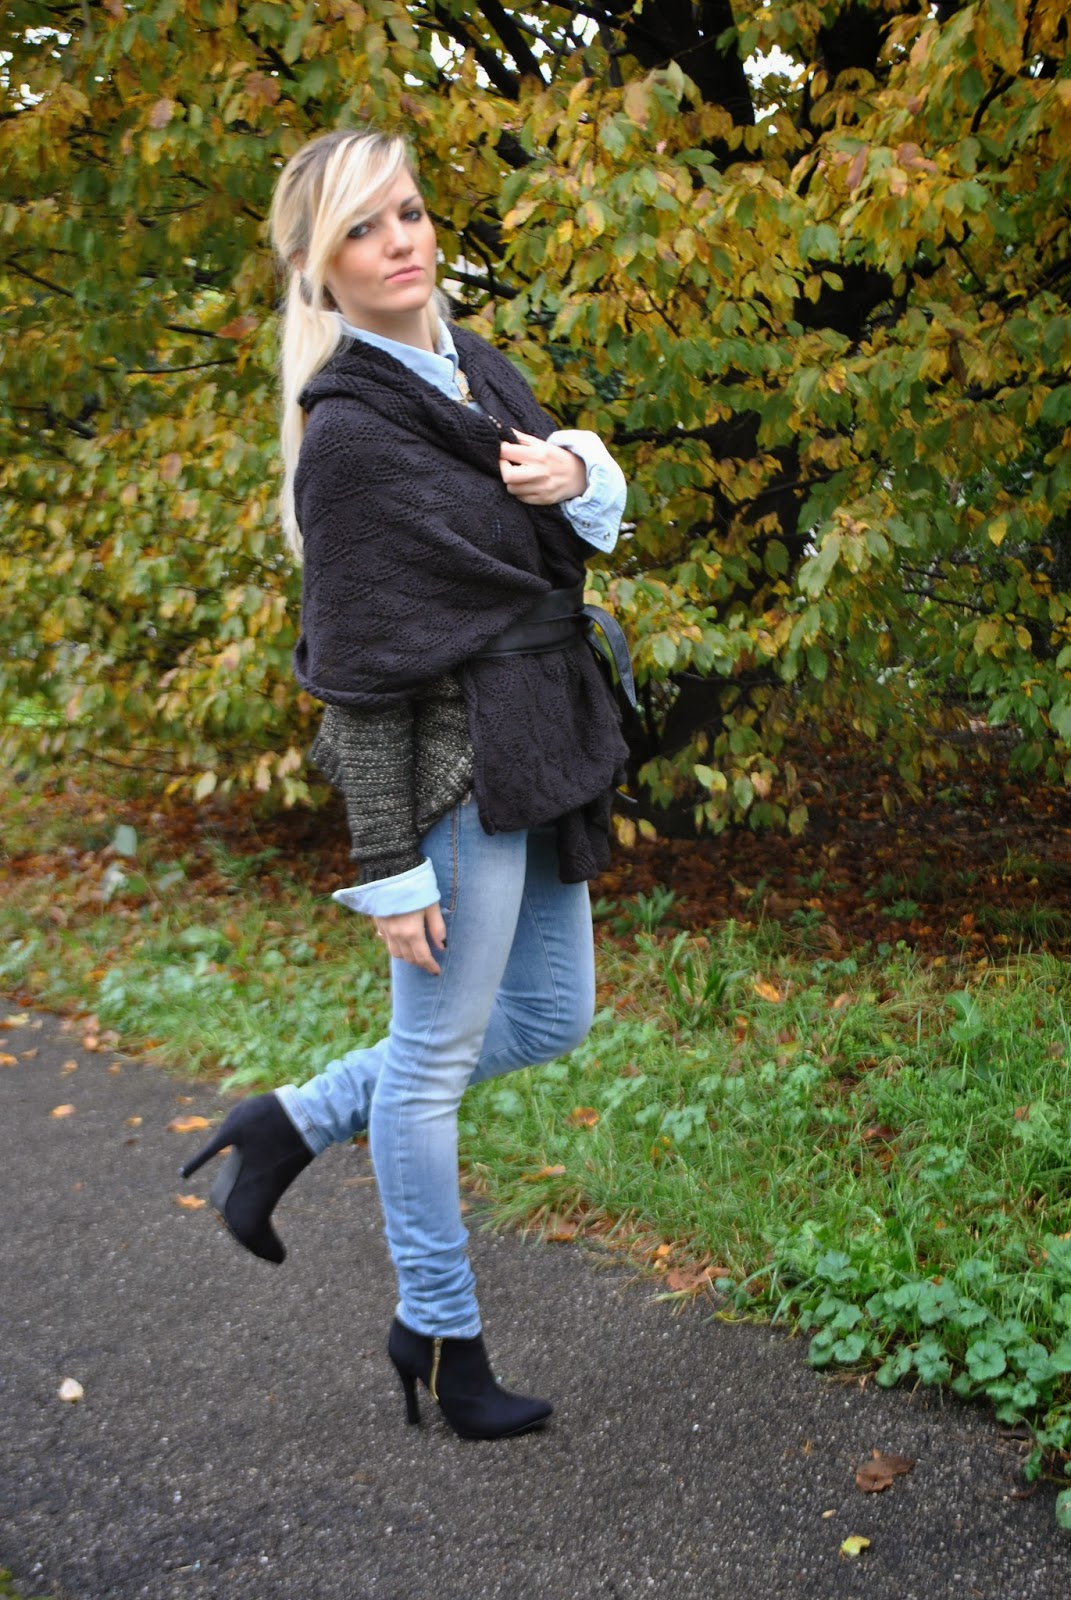 outfit outfit autunnali outfit novembre 2014 outfit casual outfit casual autunnali outfit jeans fornarina botton up camicia di jeans e mantella nera mantella nera fermata in vita con cintura fisciacca how towear cape autumnal outfit cape and jeans denim shirt fornarina jeans ankle boots fashion blog italiani fashion blogger italiane fashion bloggers italy mariafelicia magno mariafelicia magno fashion blogger colorblock by felym majique collana etnica majique majique london necklace pimkie boots italian girls ragazze bionde fashion blogger bionde blonde girls